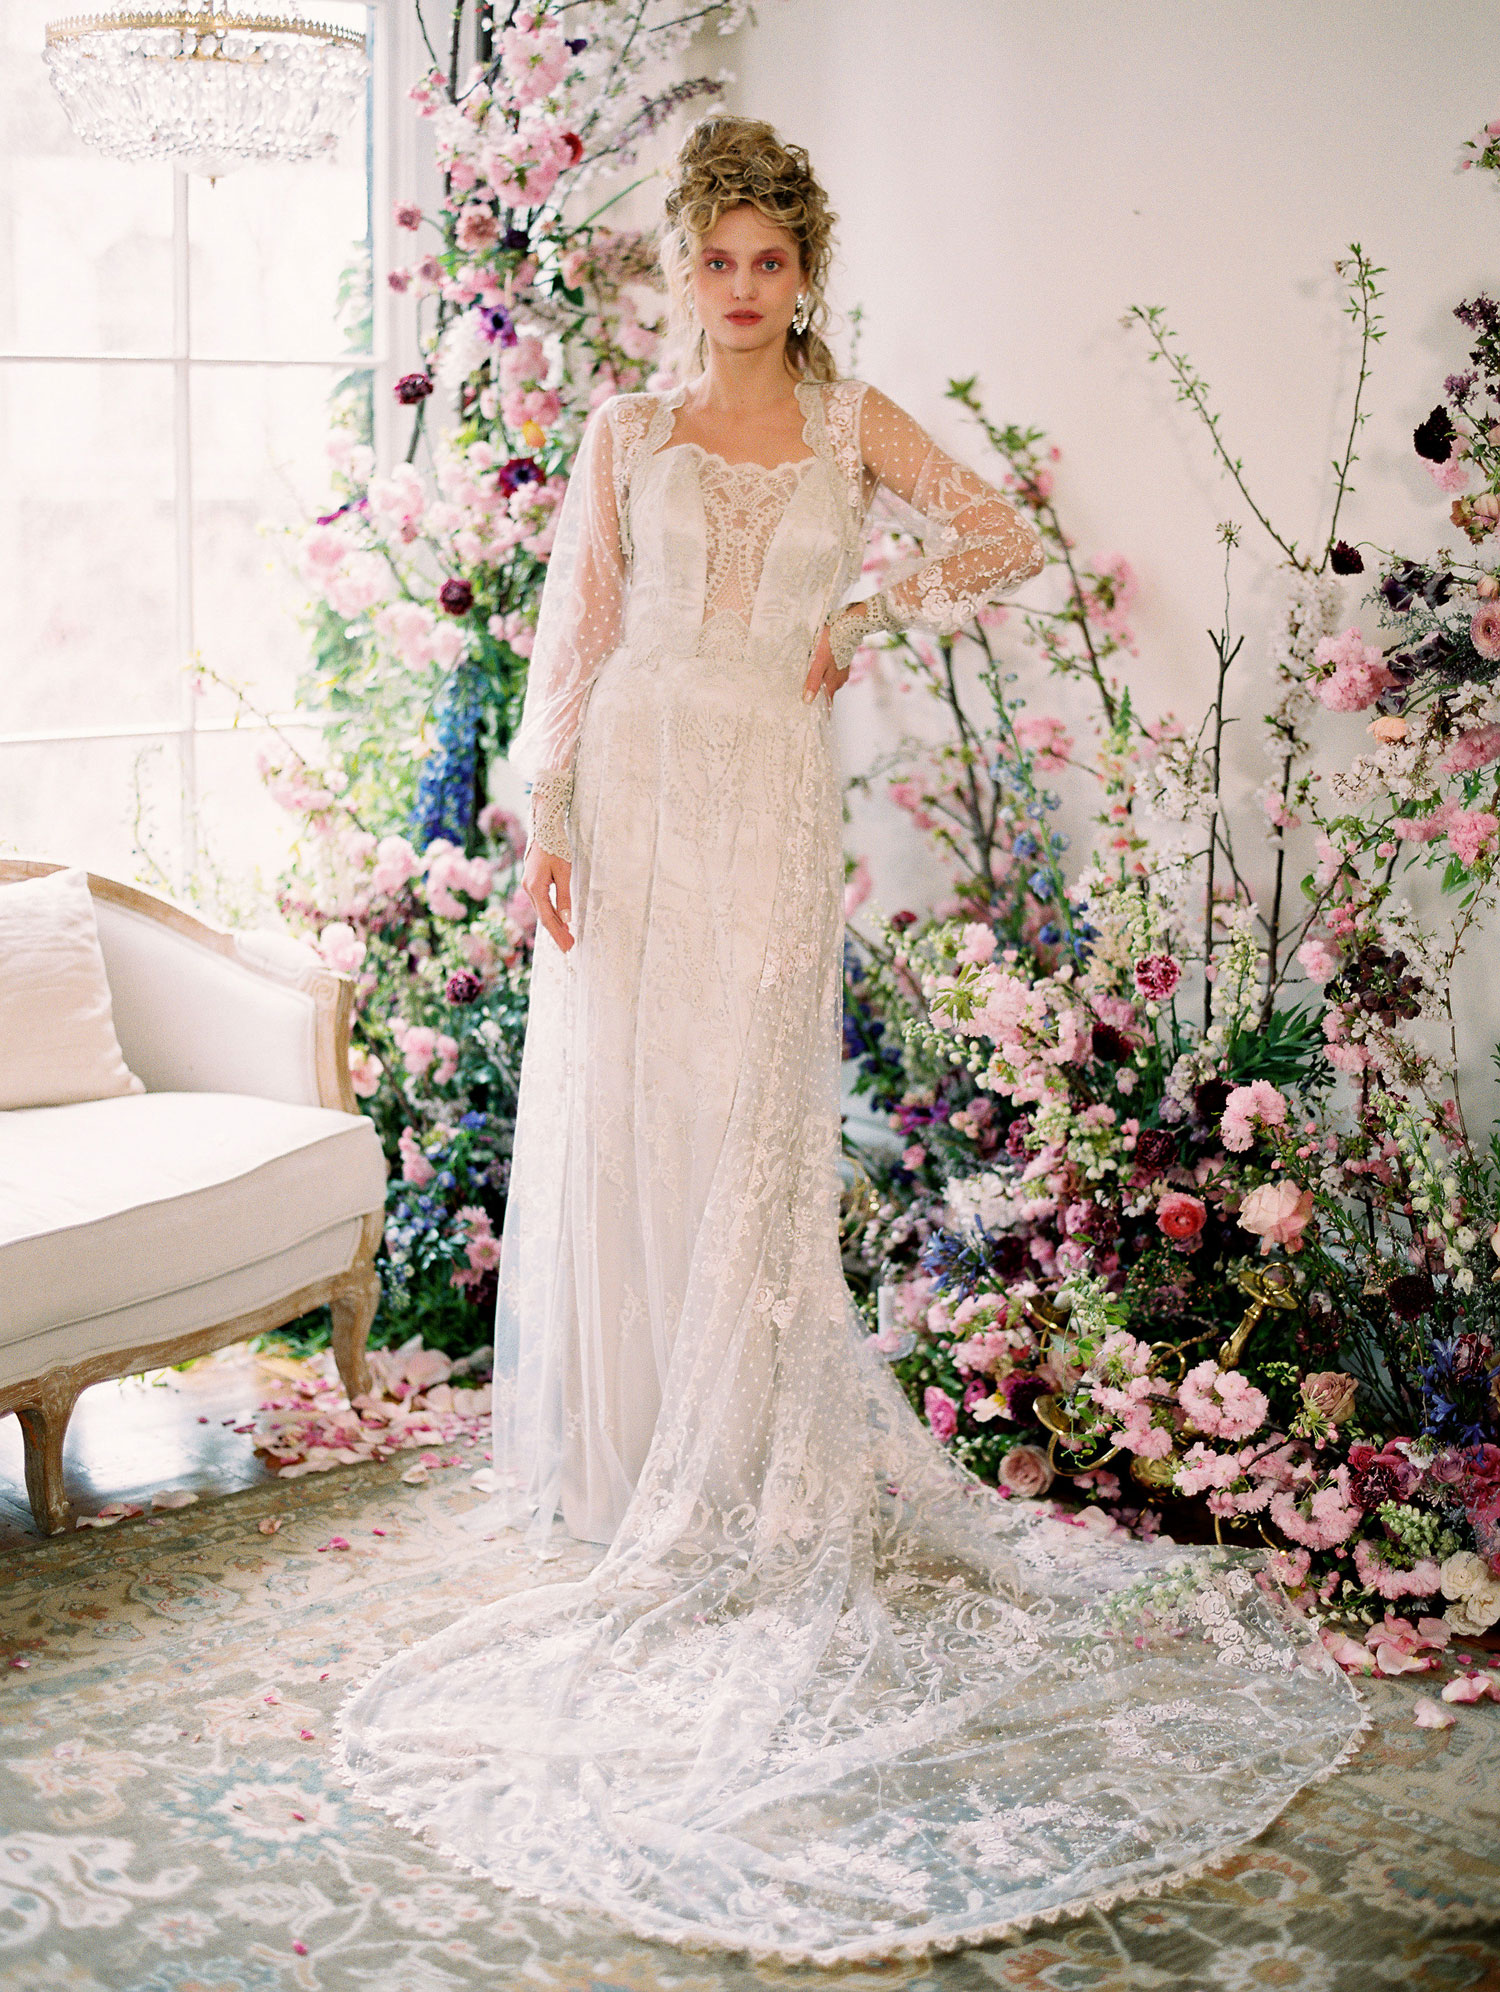 Cecily lace dress with Eva coat statement sleeves puffy wedding dress sleeves by claire pettibone